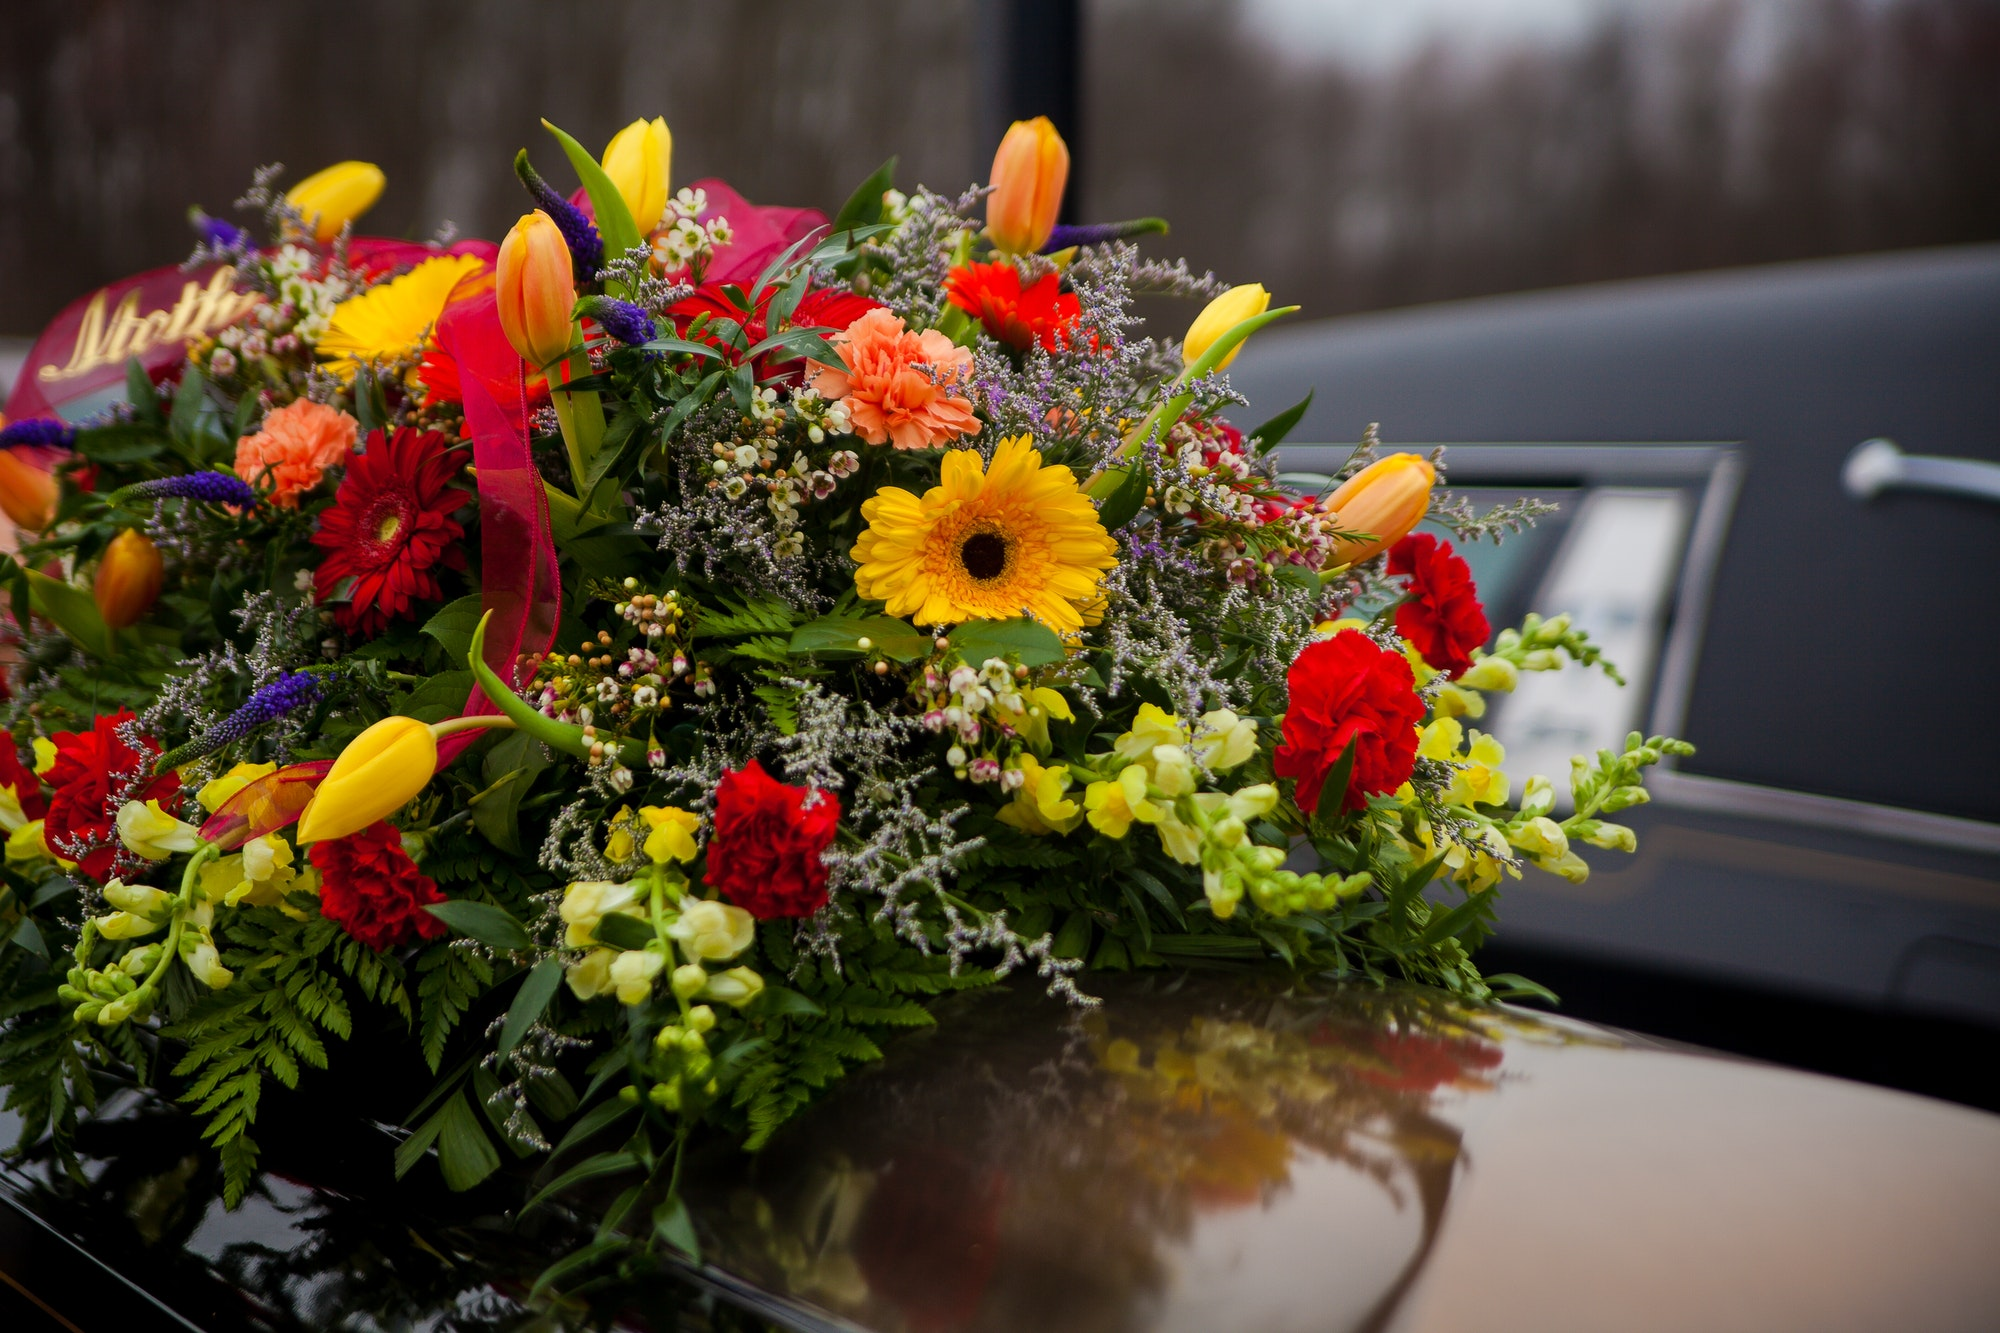 Funeral Casket and flowers next to hearse